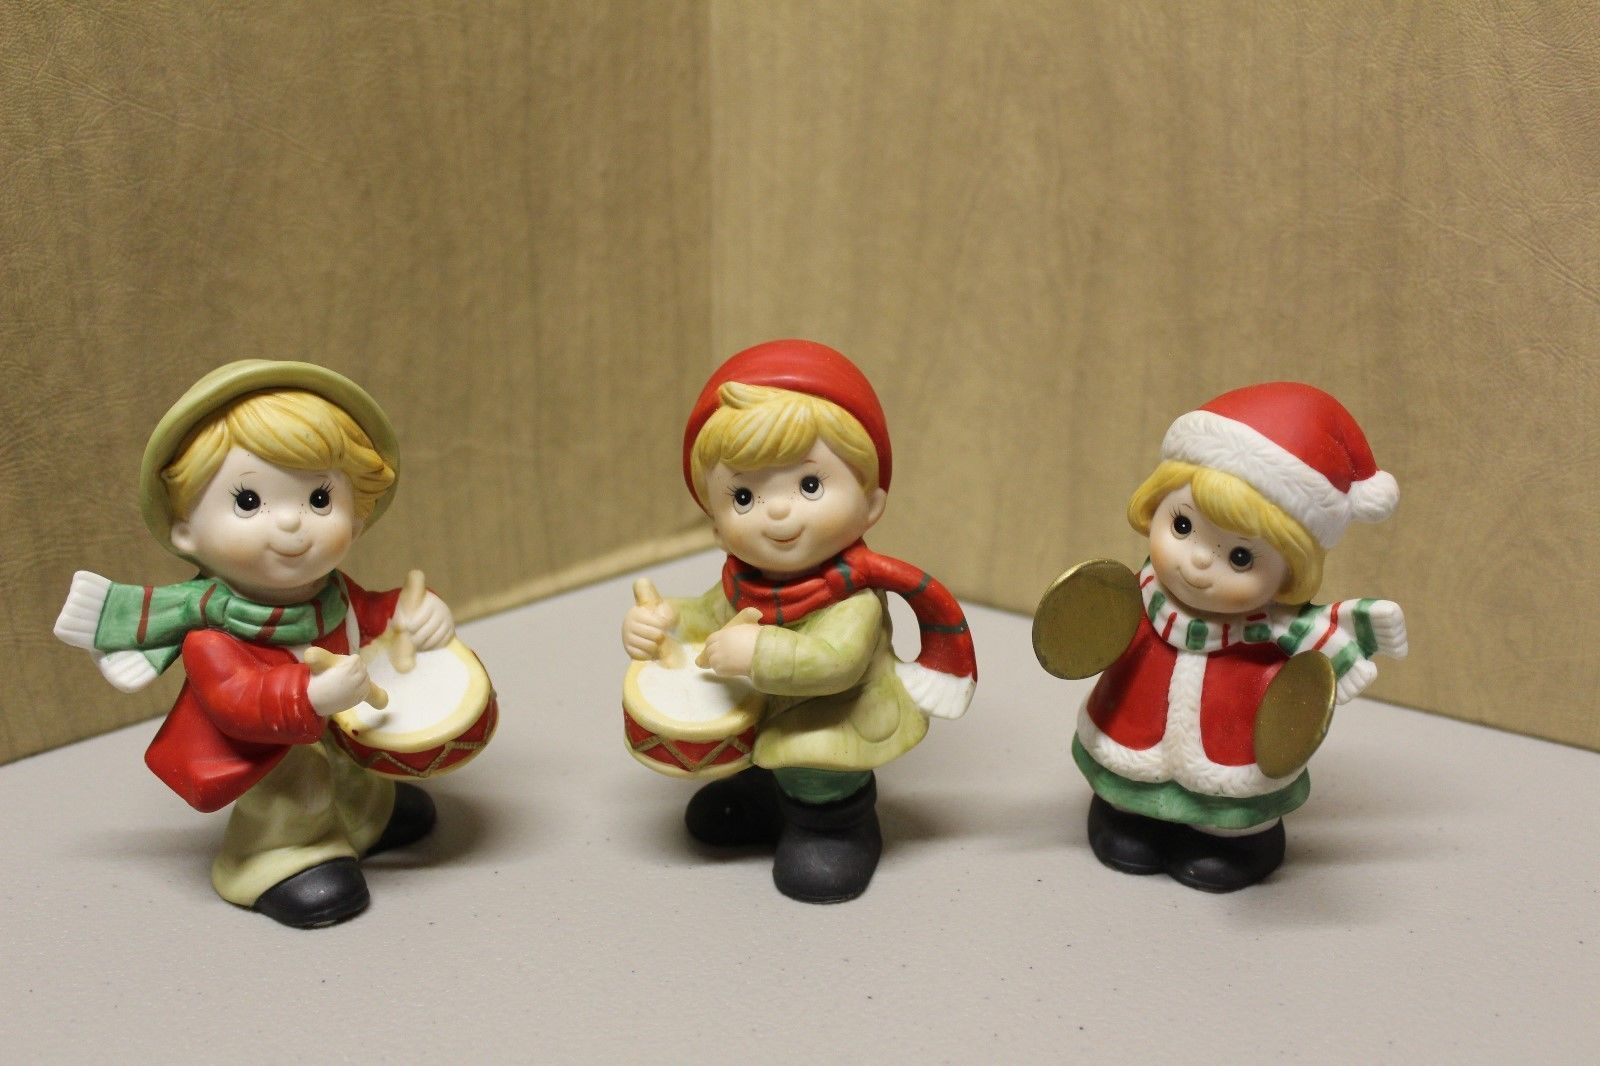 Home interior figurines for sale on ebay